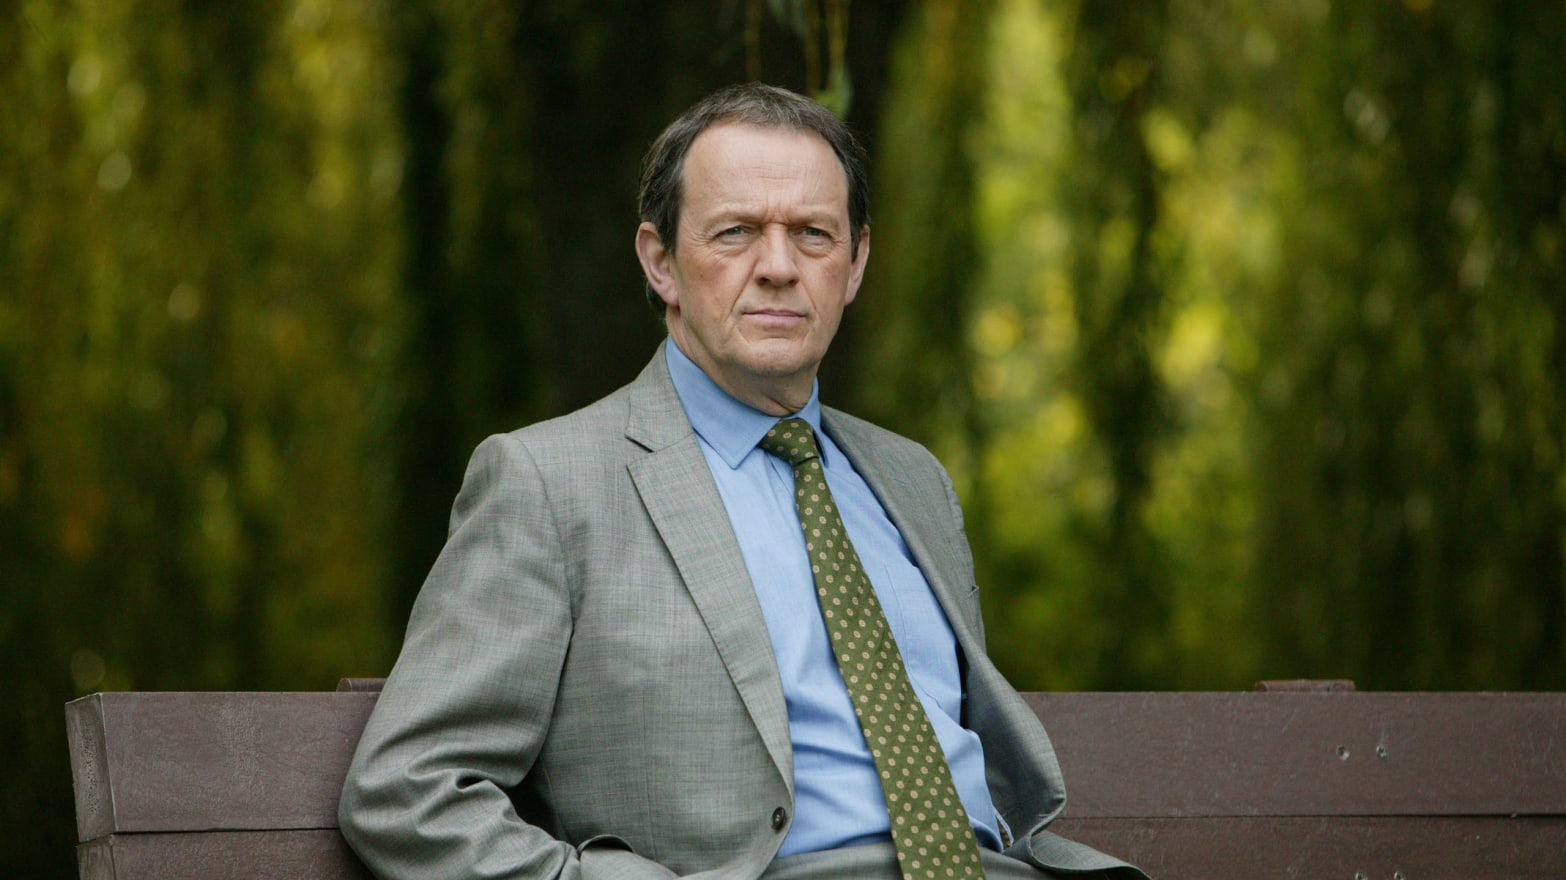 Meet Inspector Lewis Kevin Whately On Morse John Thaw And The